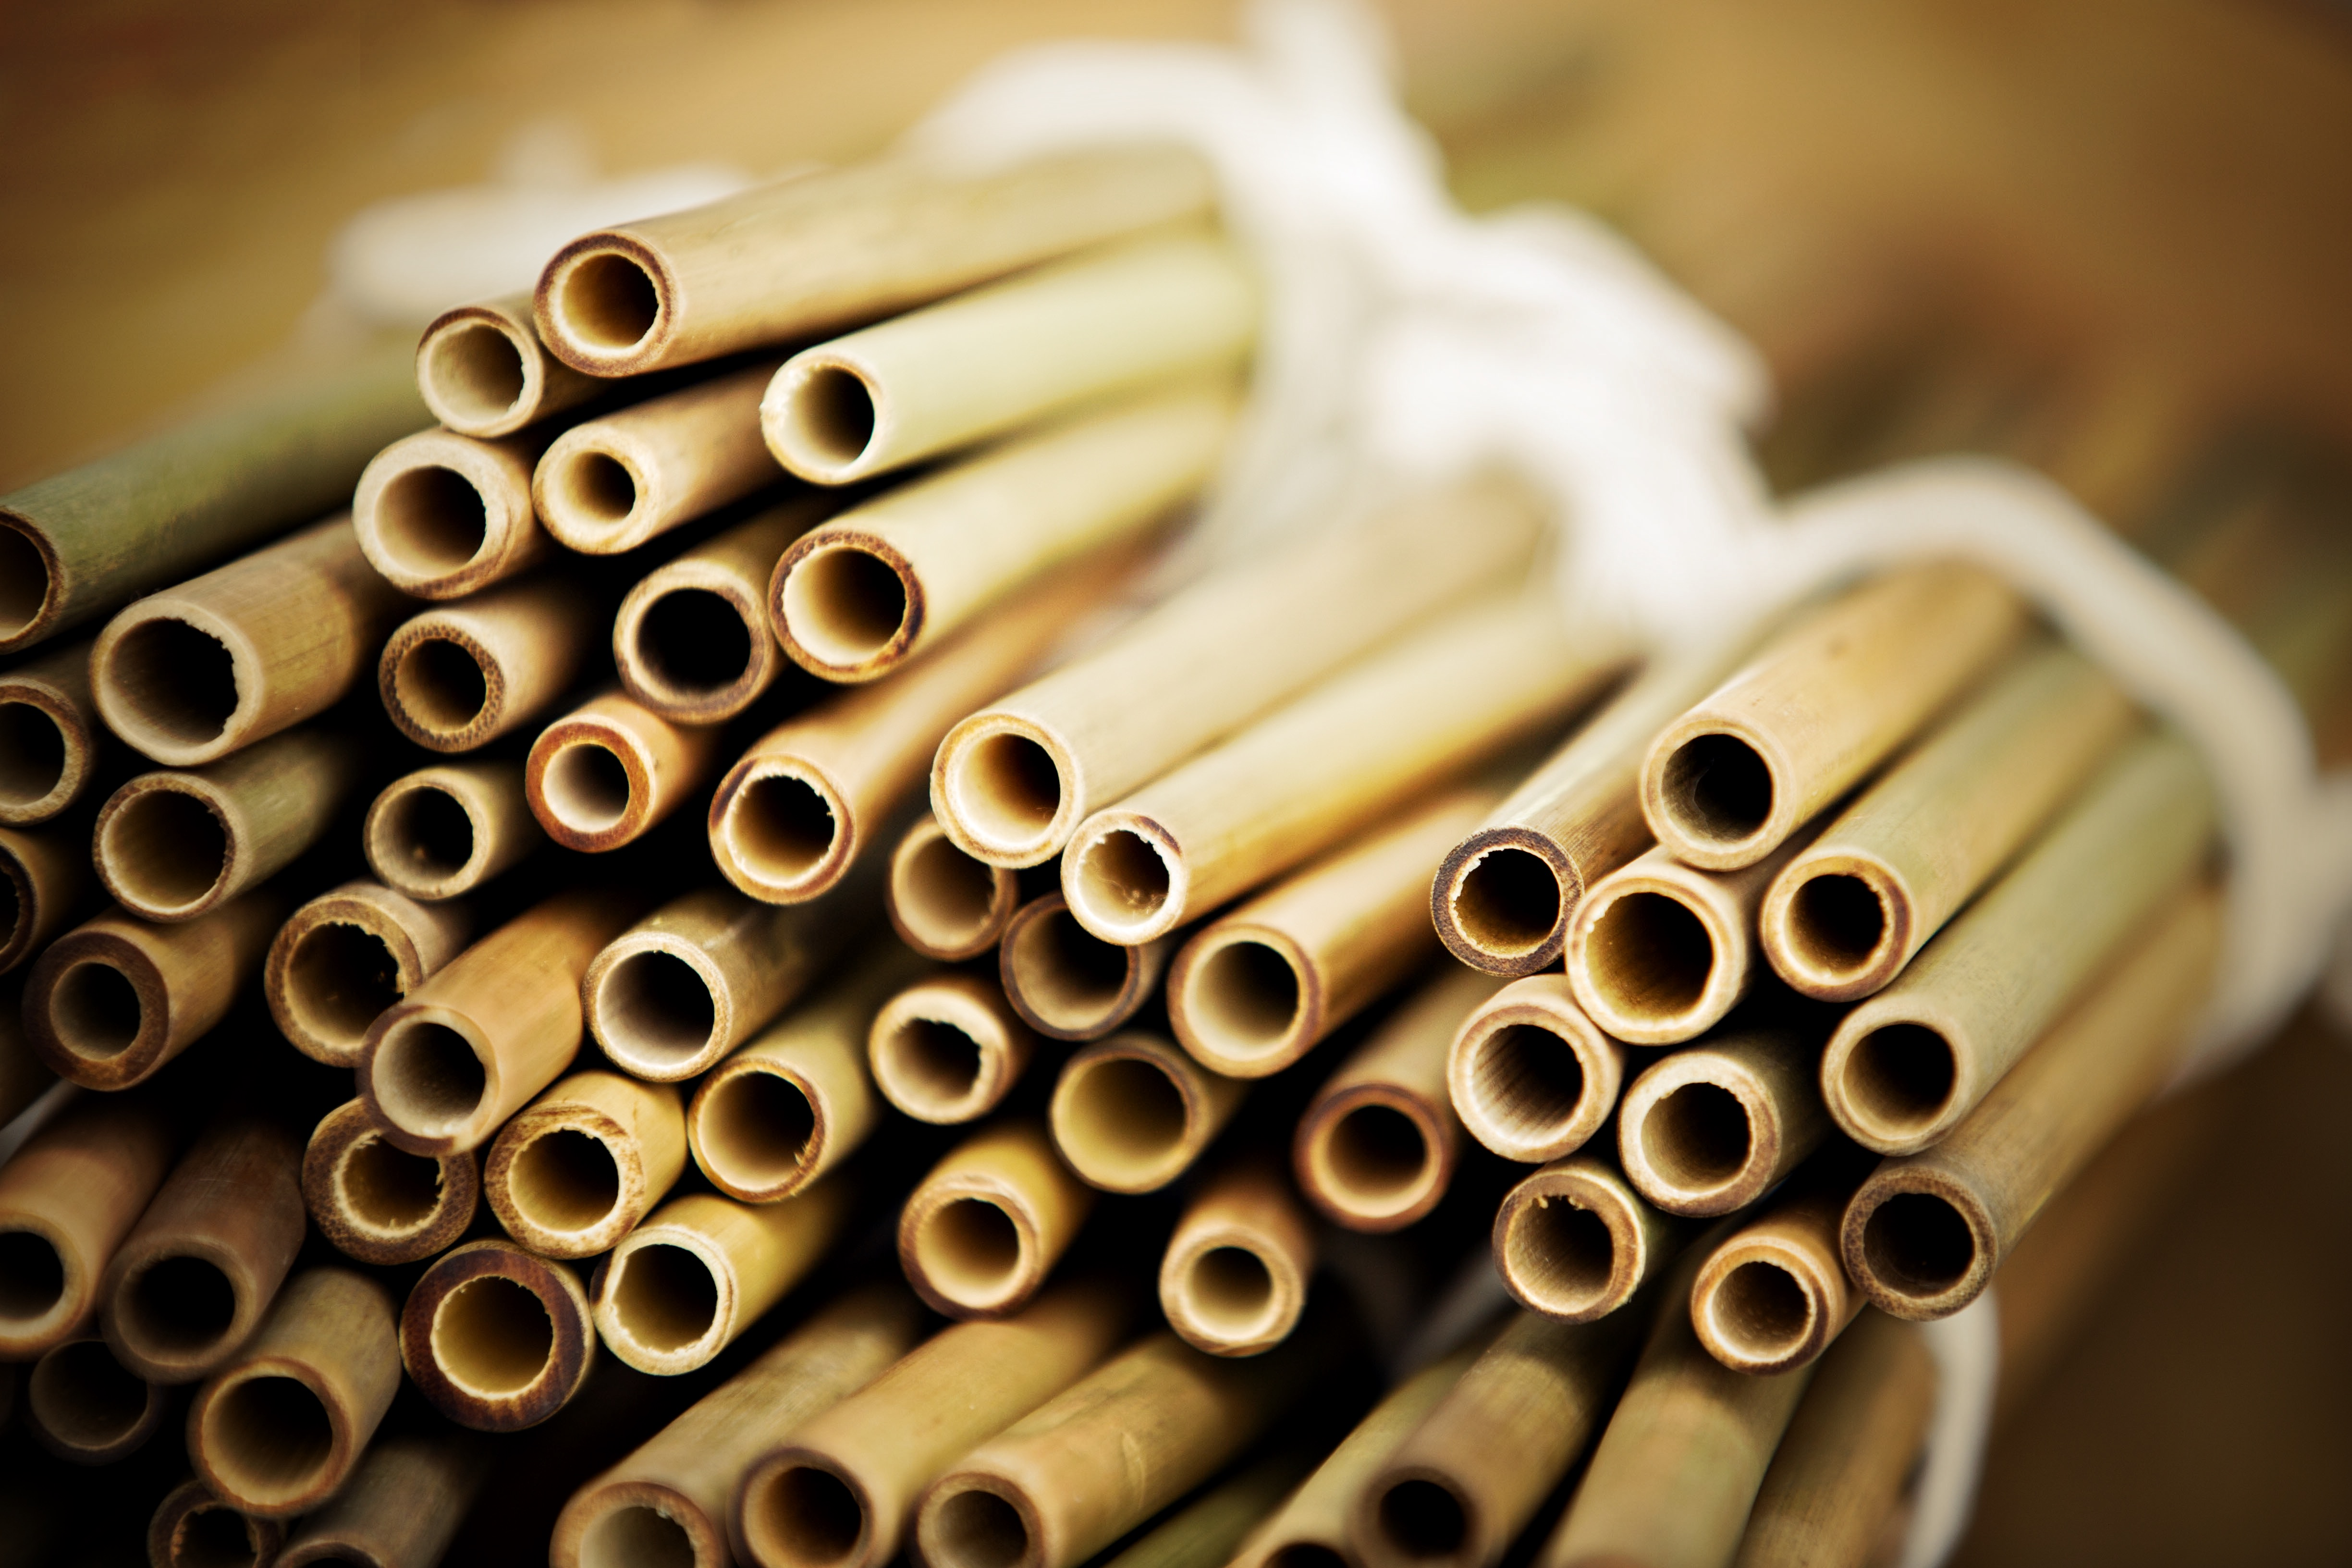 Recycling bamboo straws